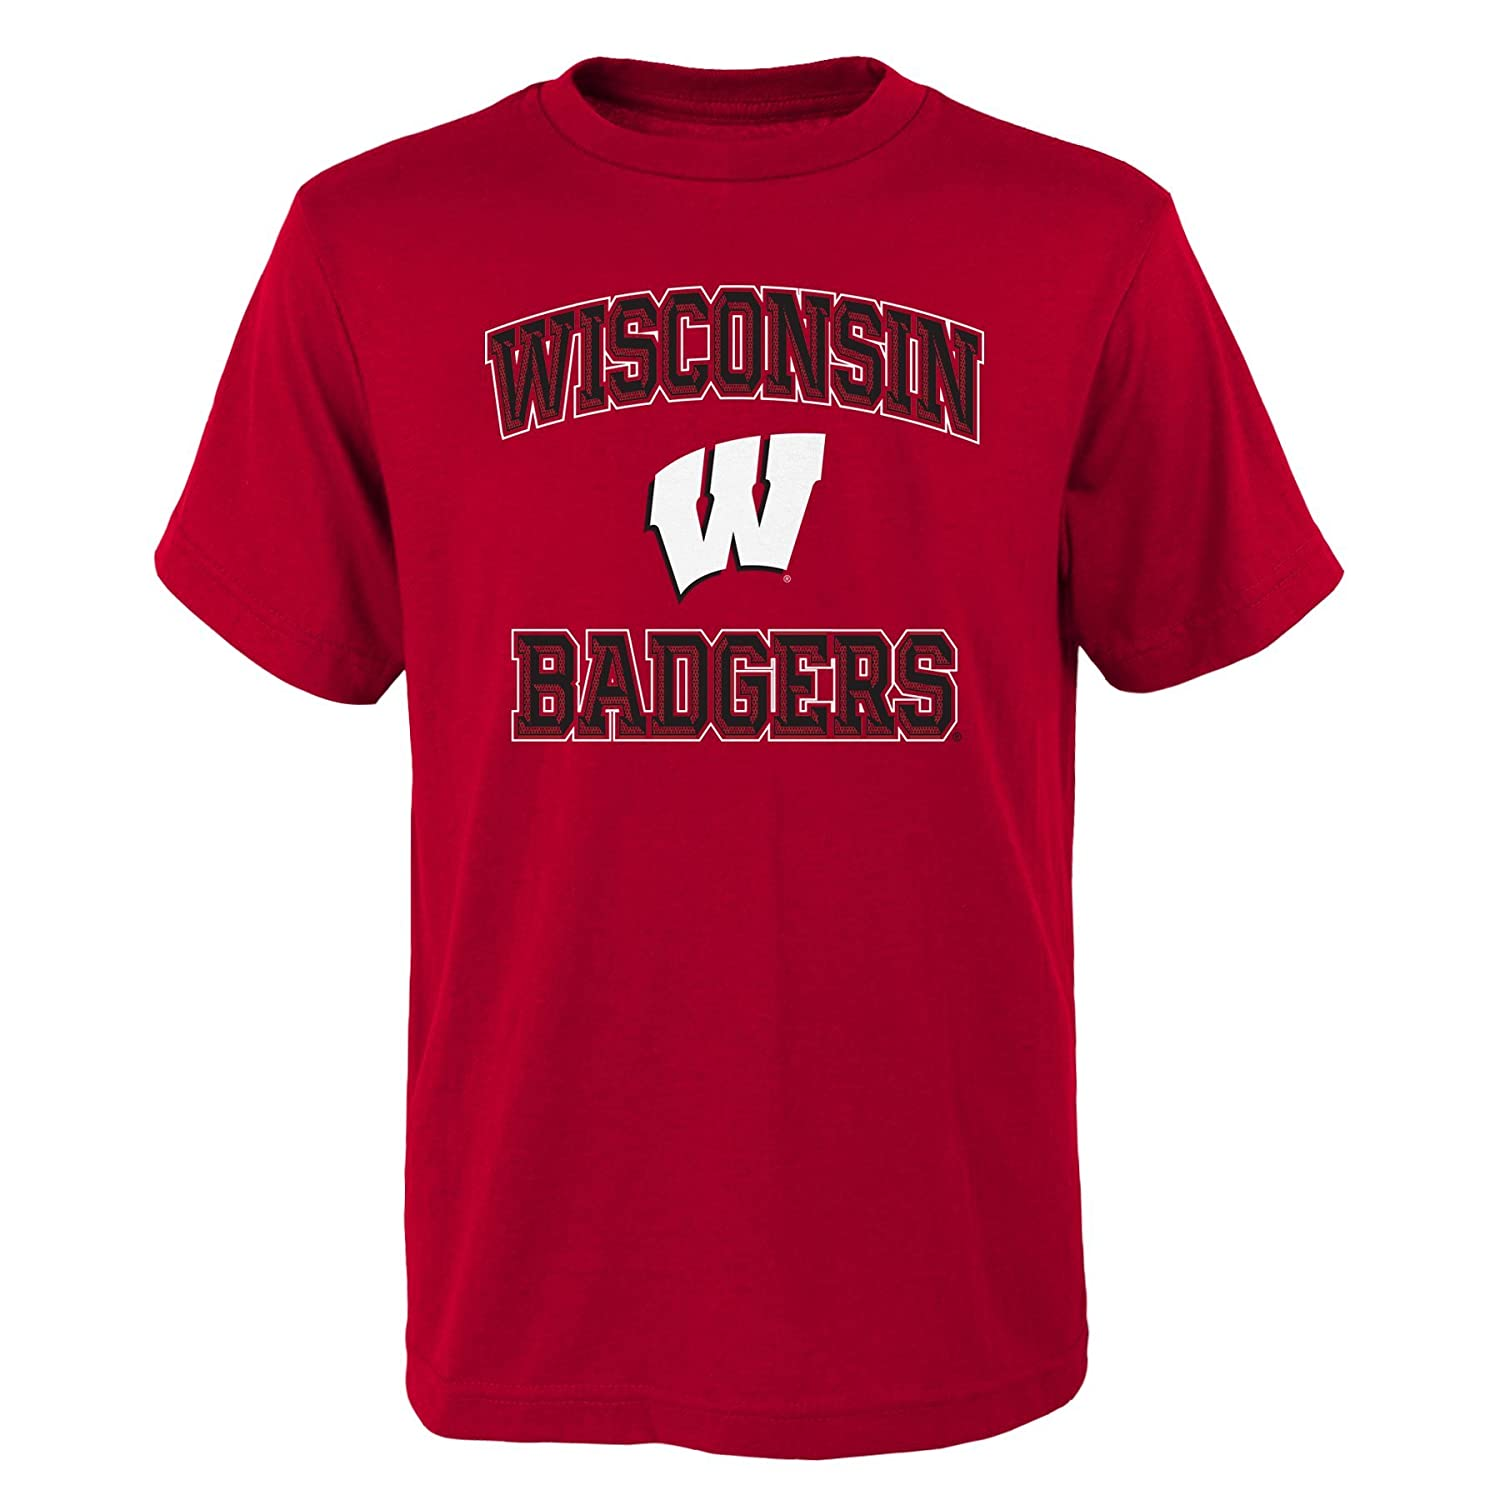 Youth Large 12-14 NCAA Wisconsin Badgers Boys Outerstuff Game Time Basic Tee Team Color